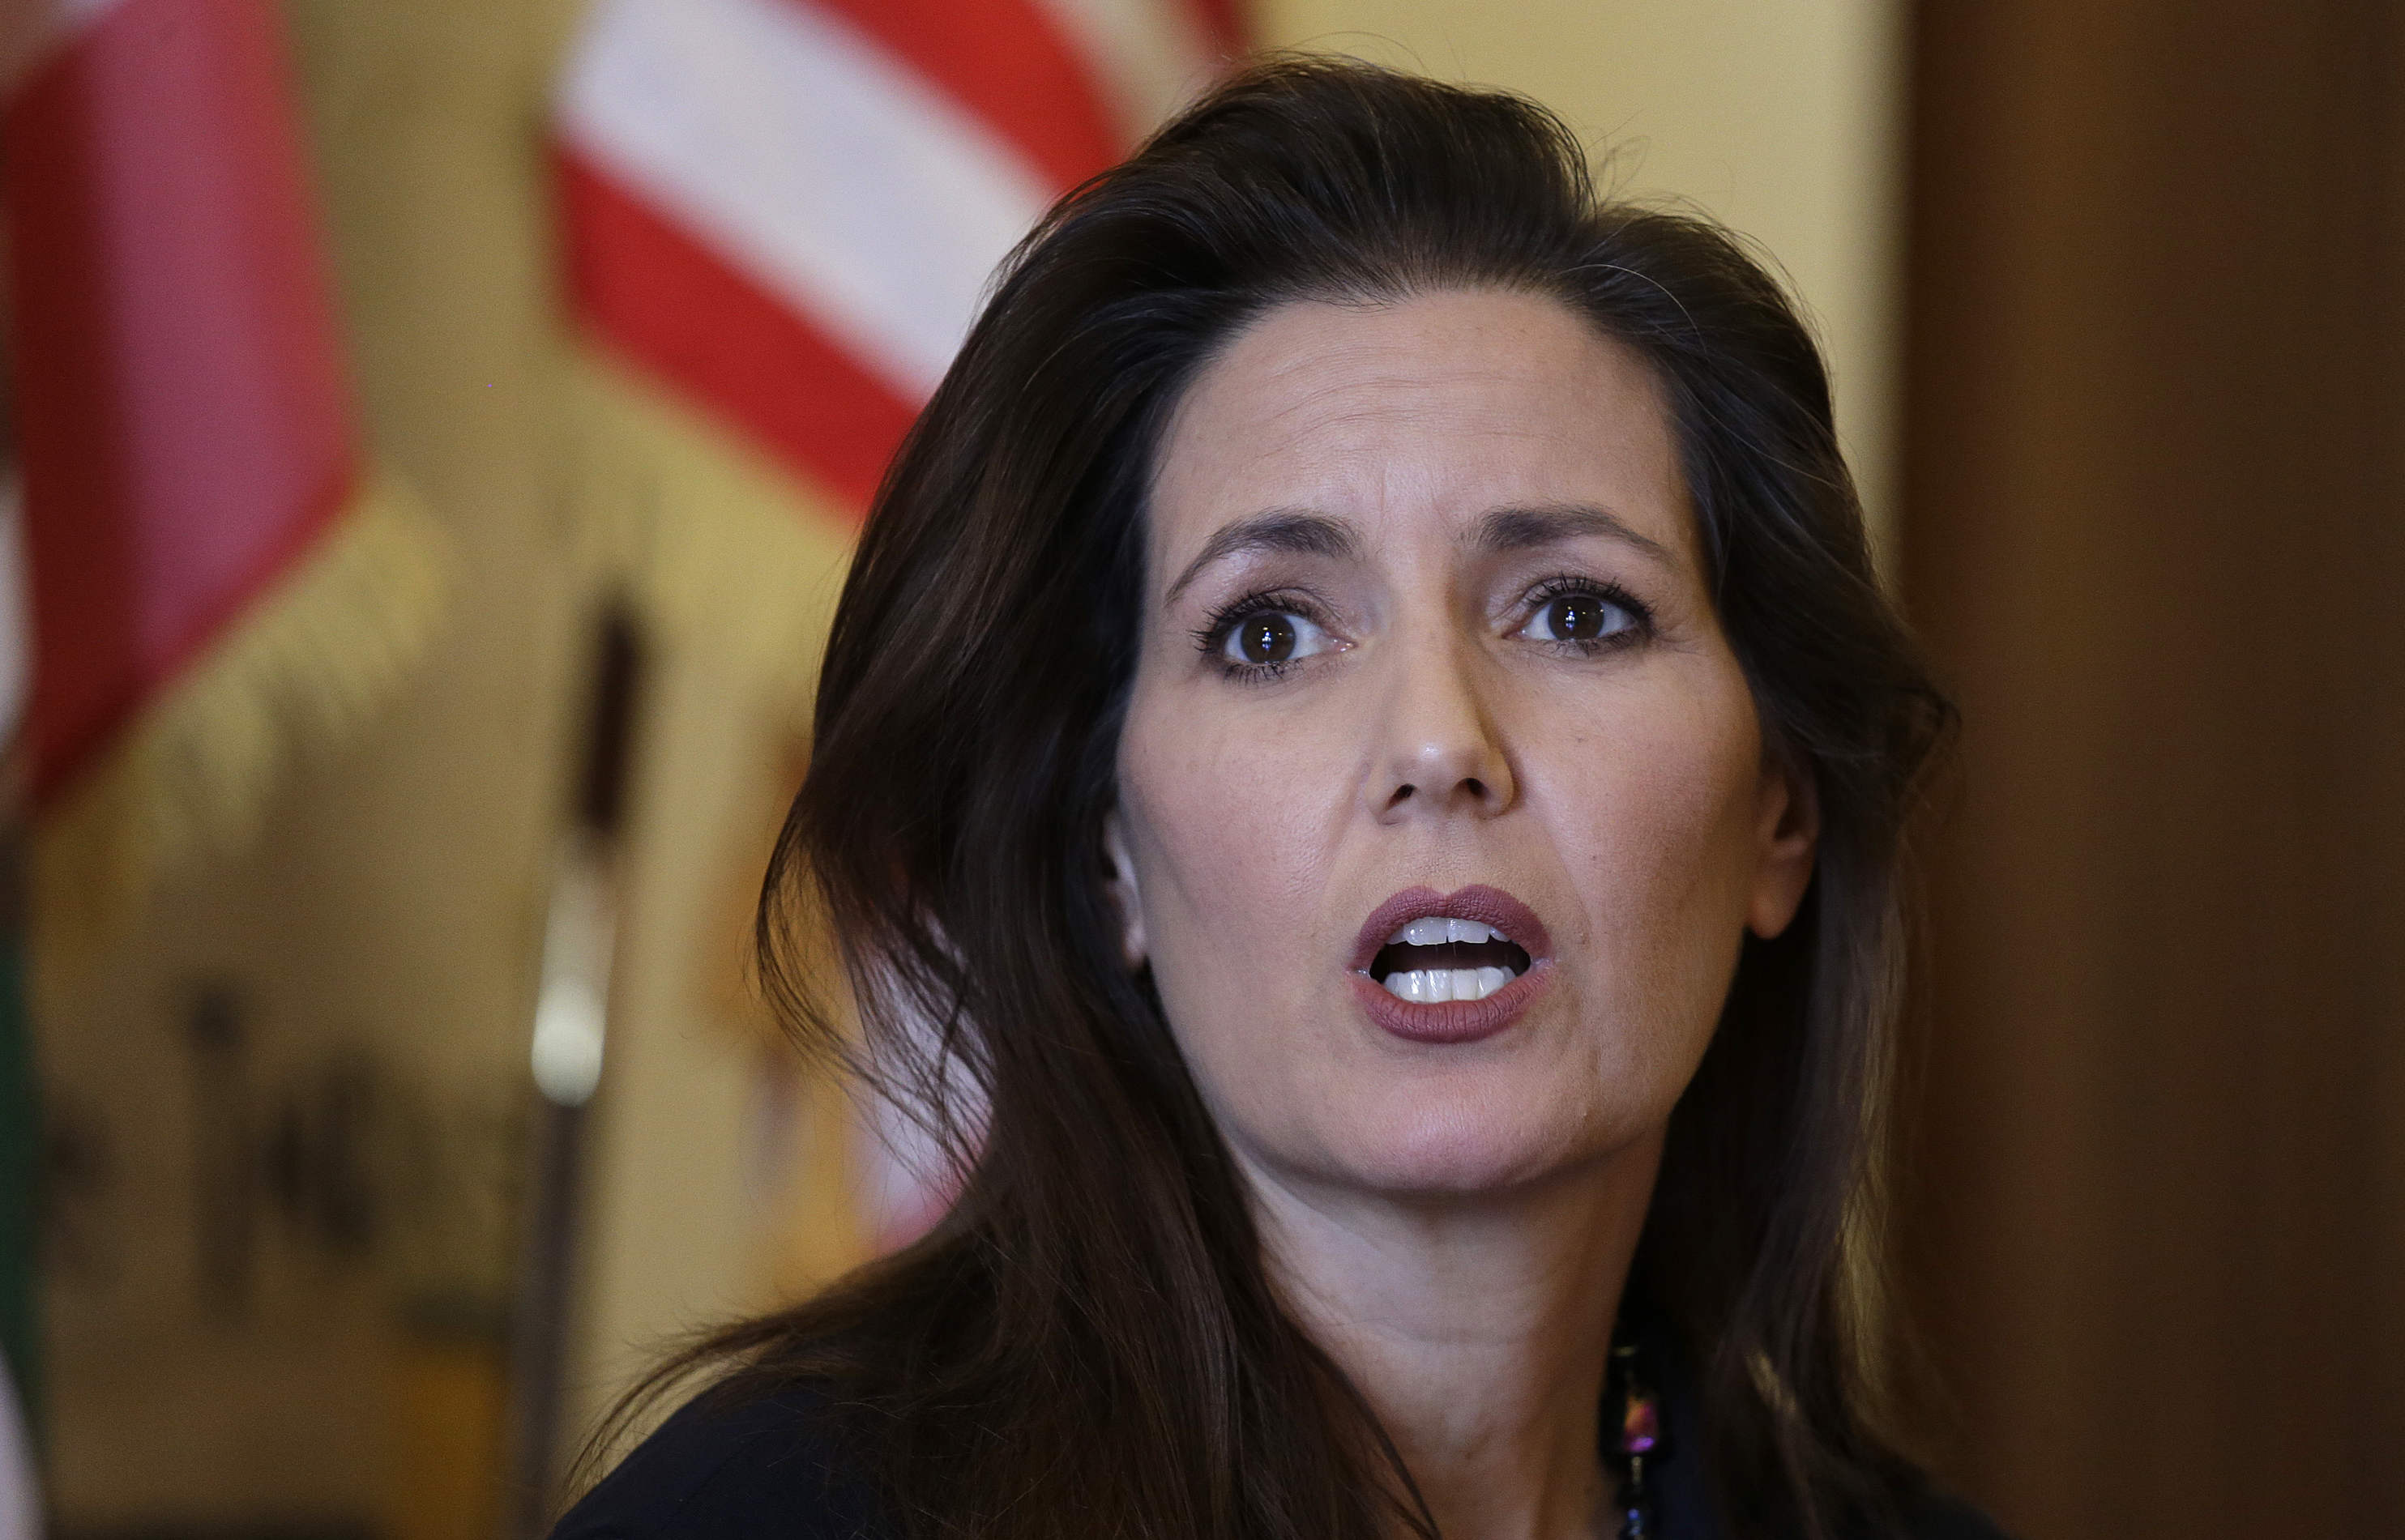 Oakland Mayor's home vandalized just before she votes 'no' on defunding the police thumbnail